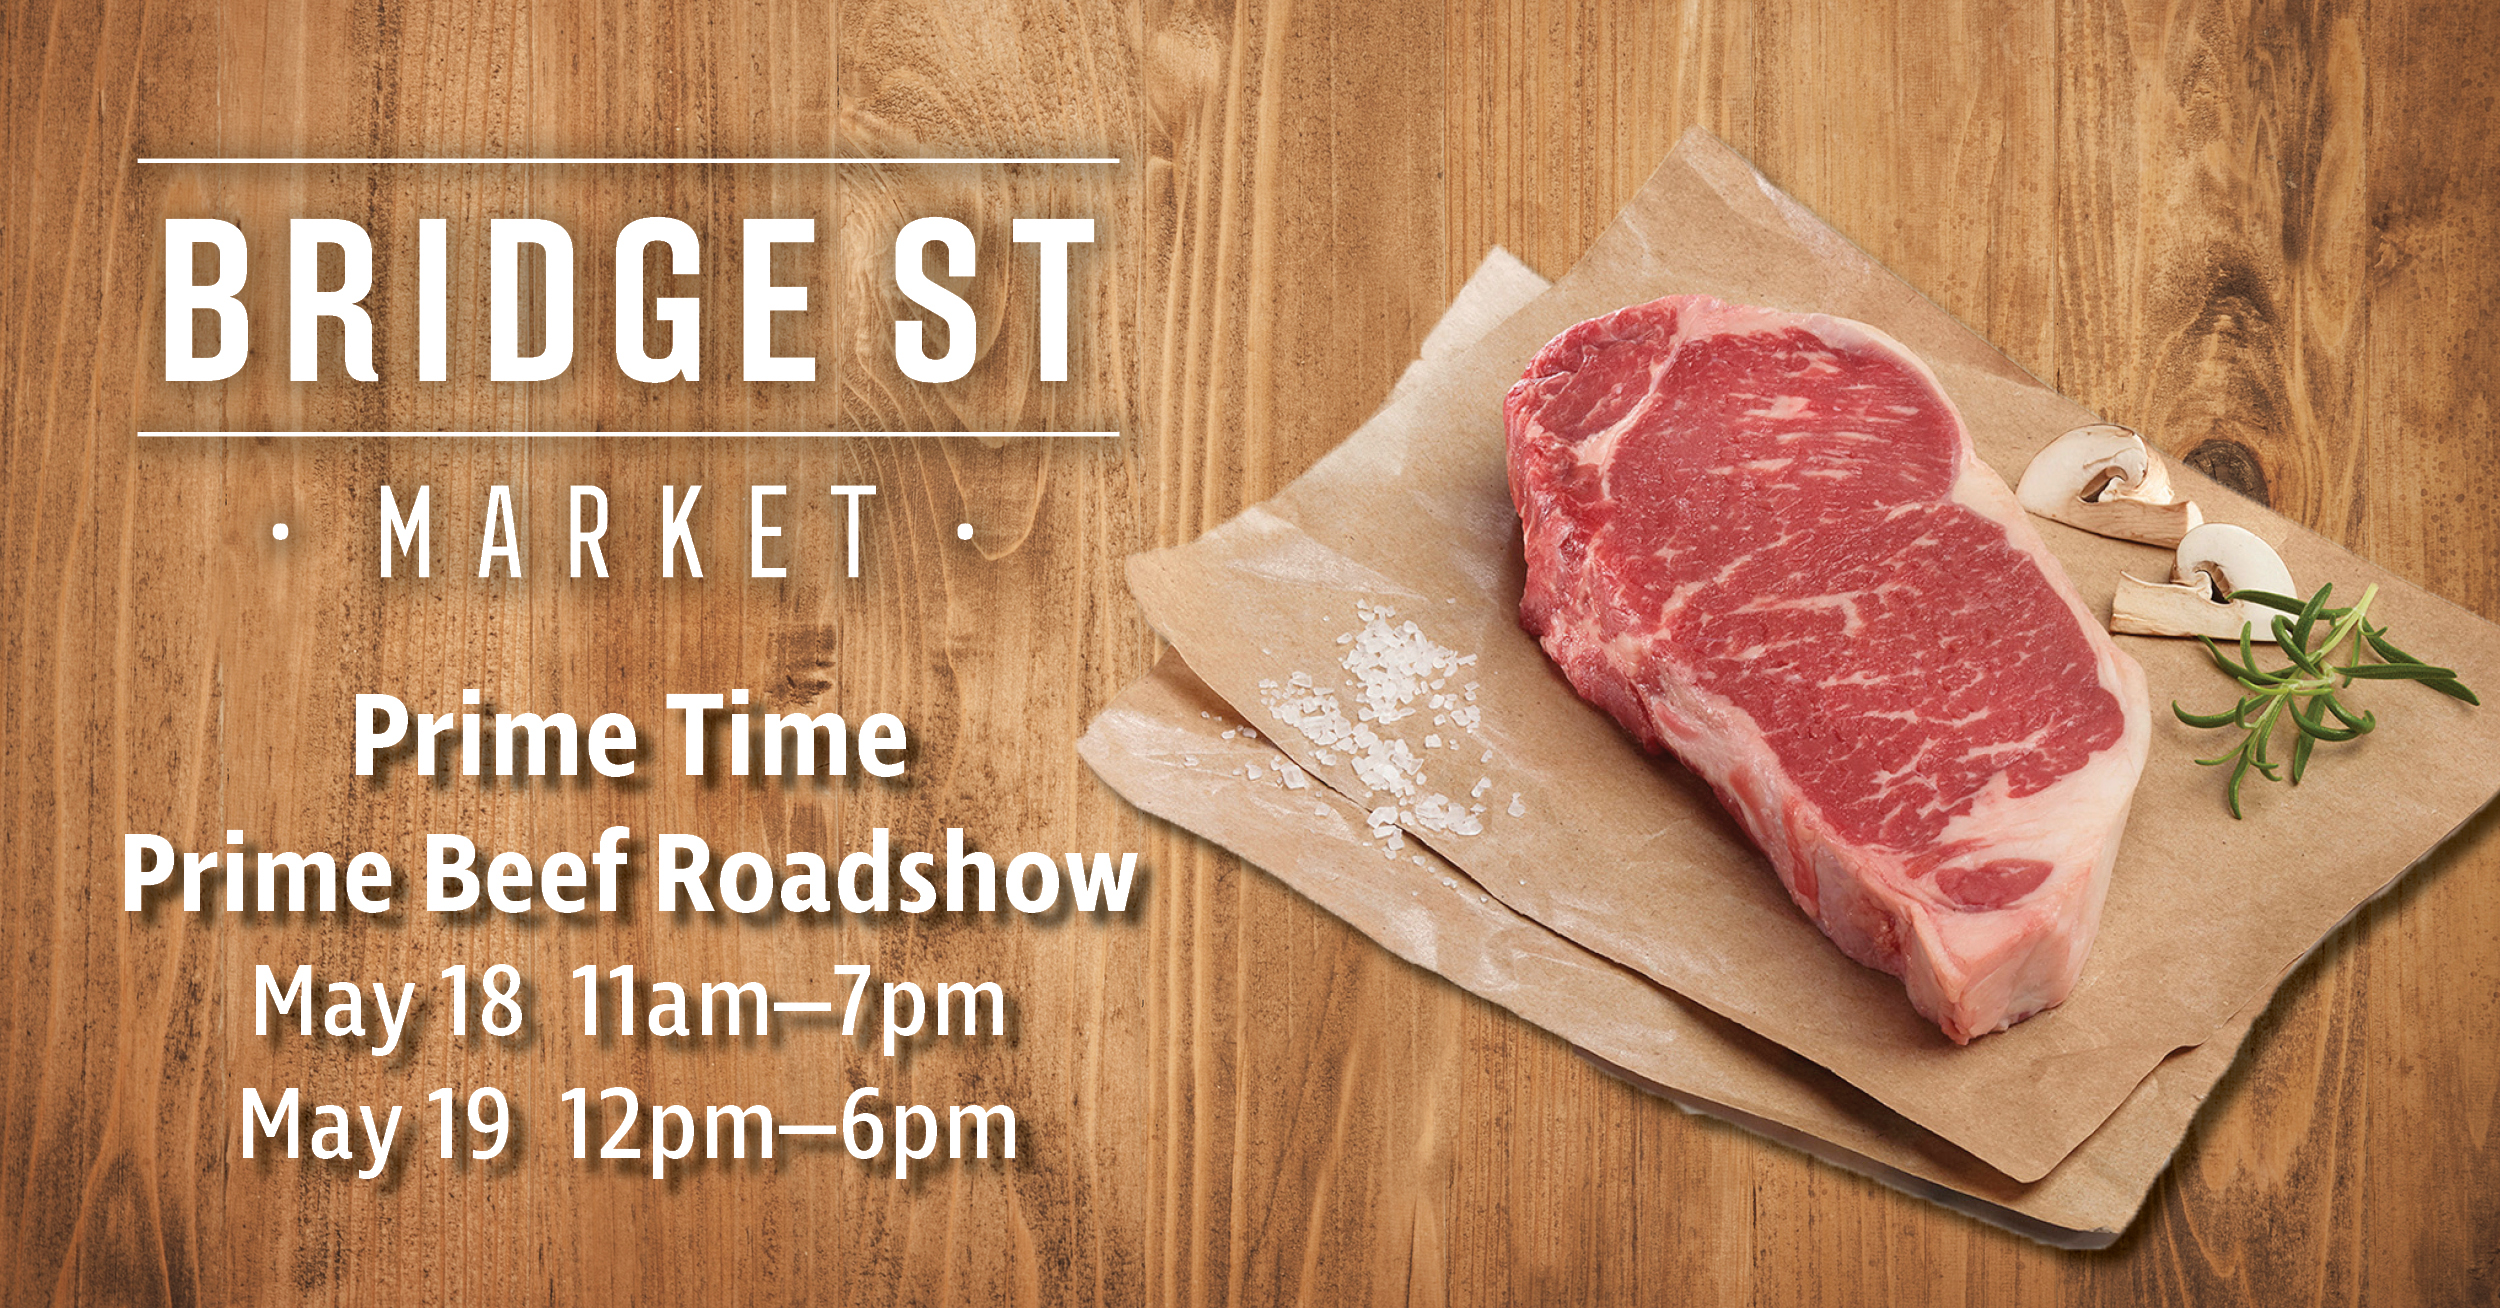 Prime Beef Roadshow May 18 and 19.jpg